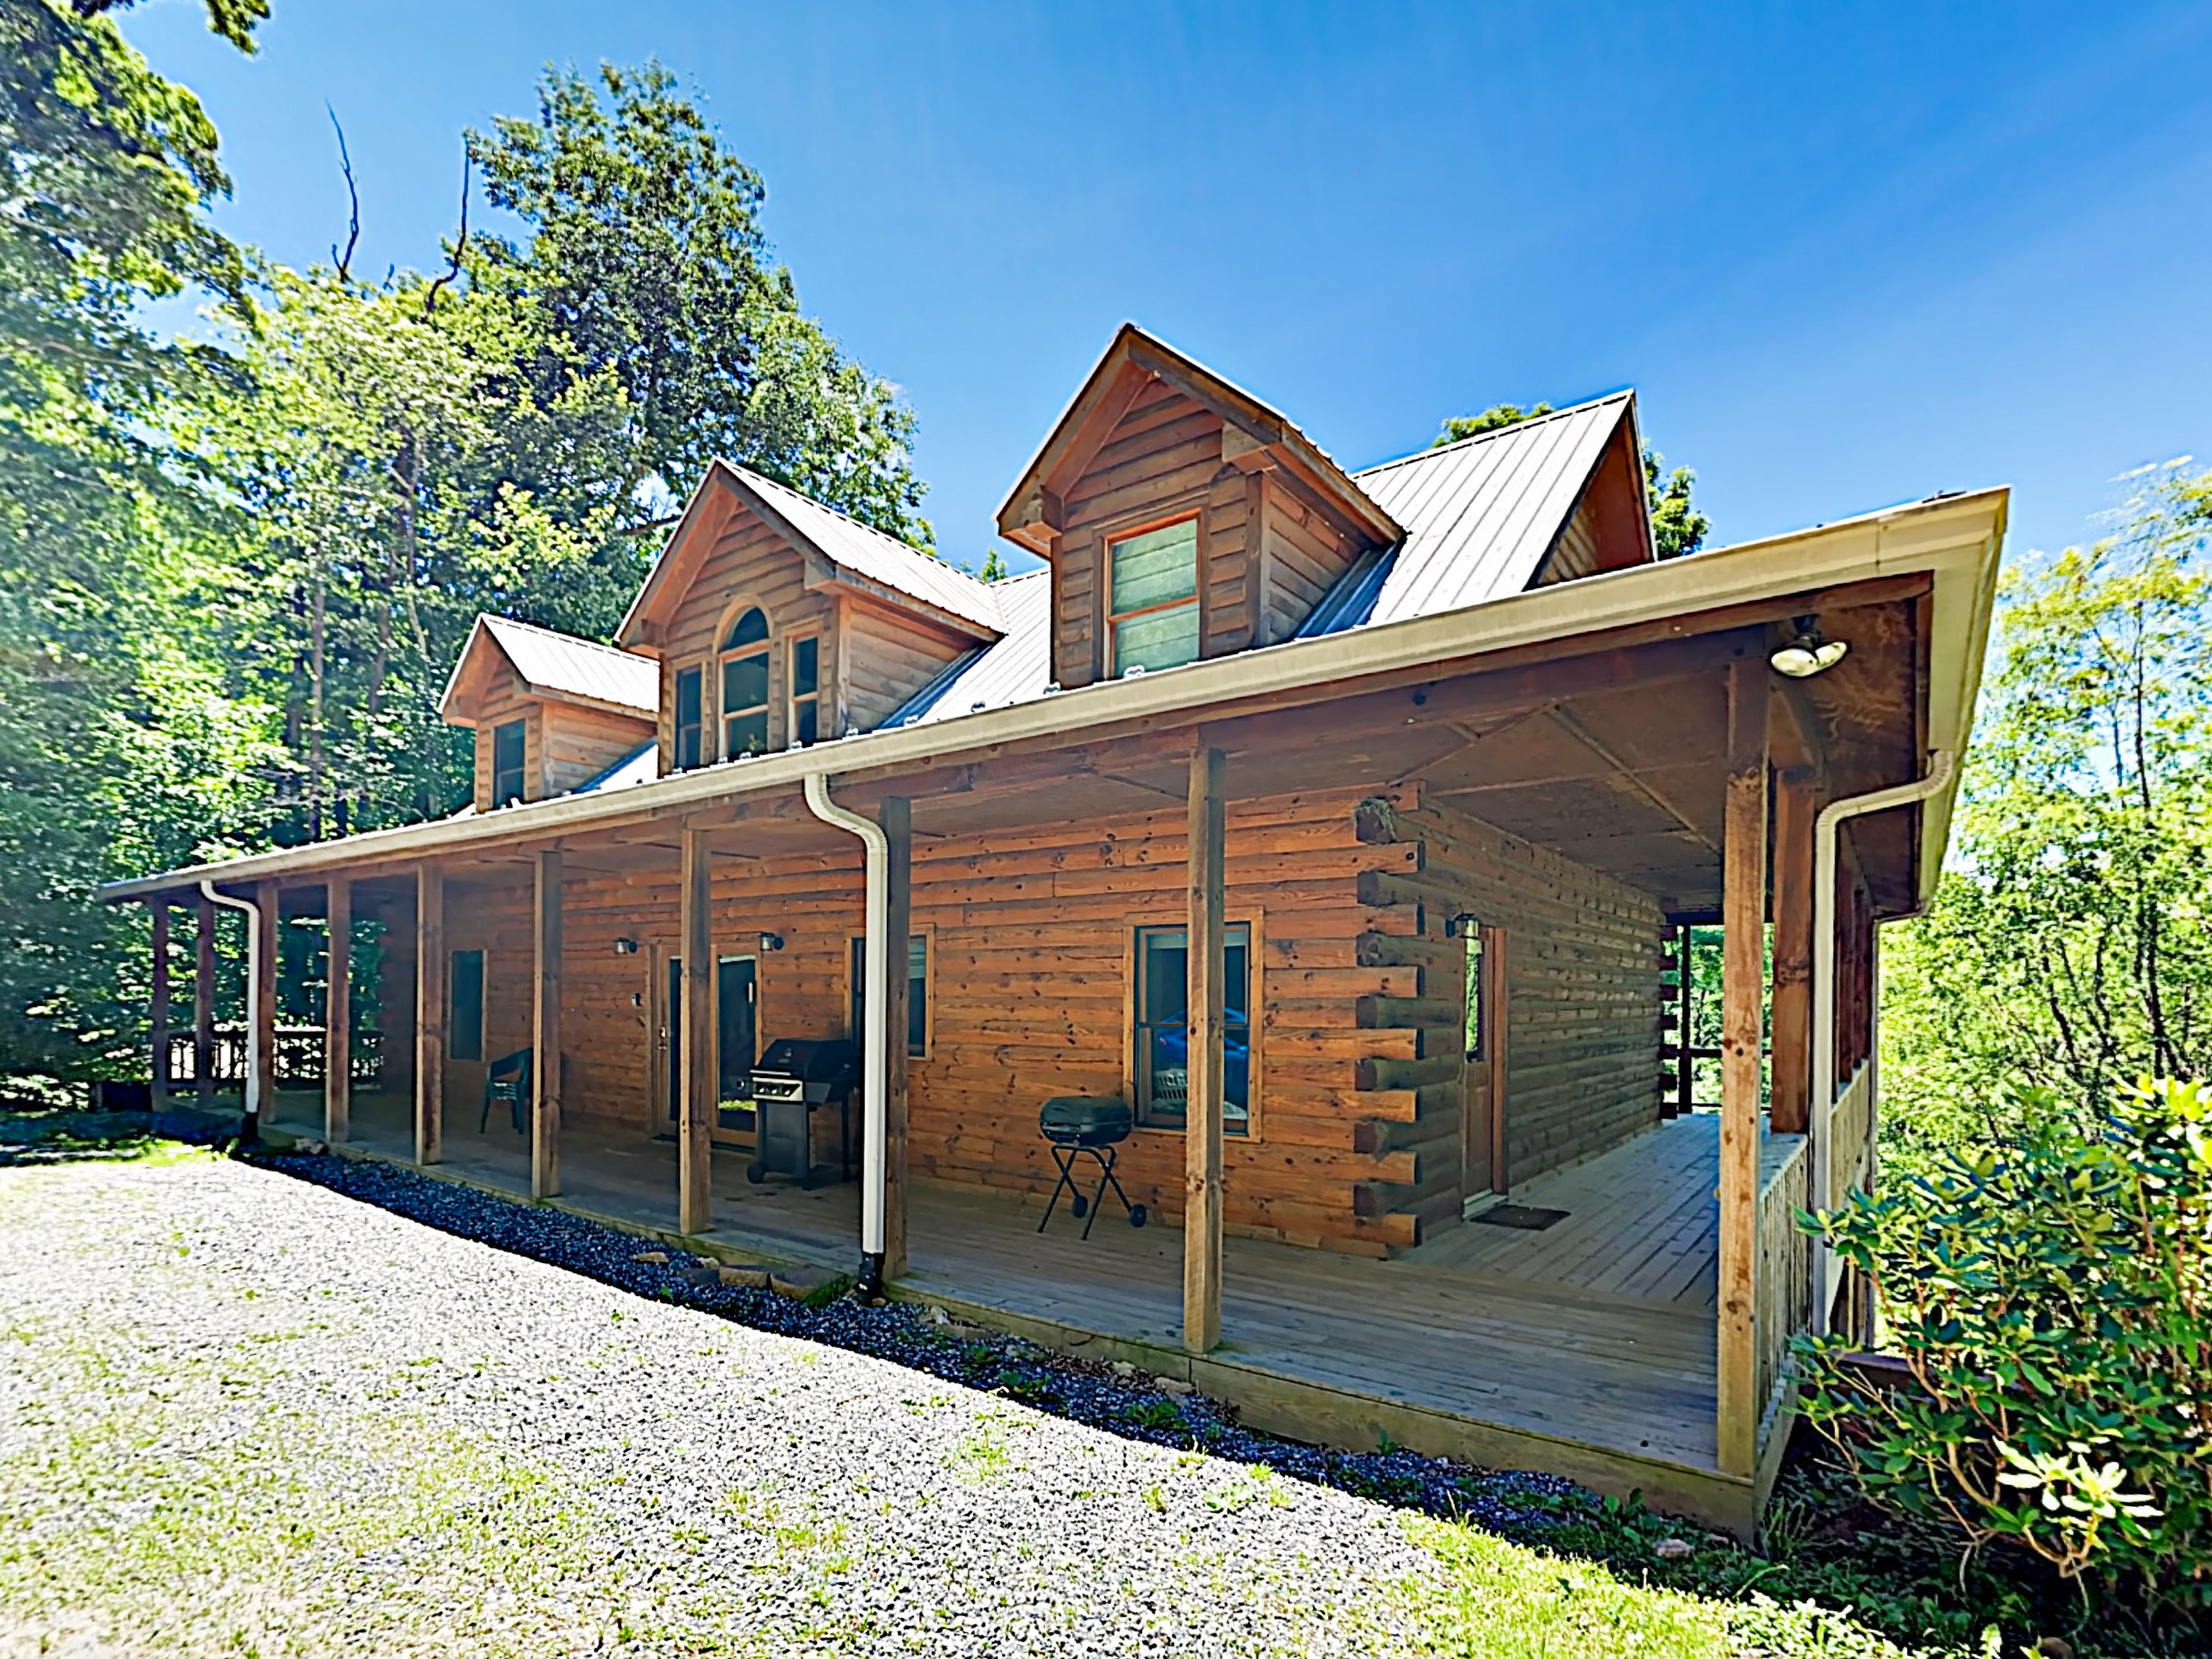 Mars Hill NC Vacation Rental Welcome! This home